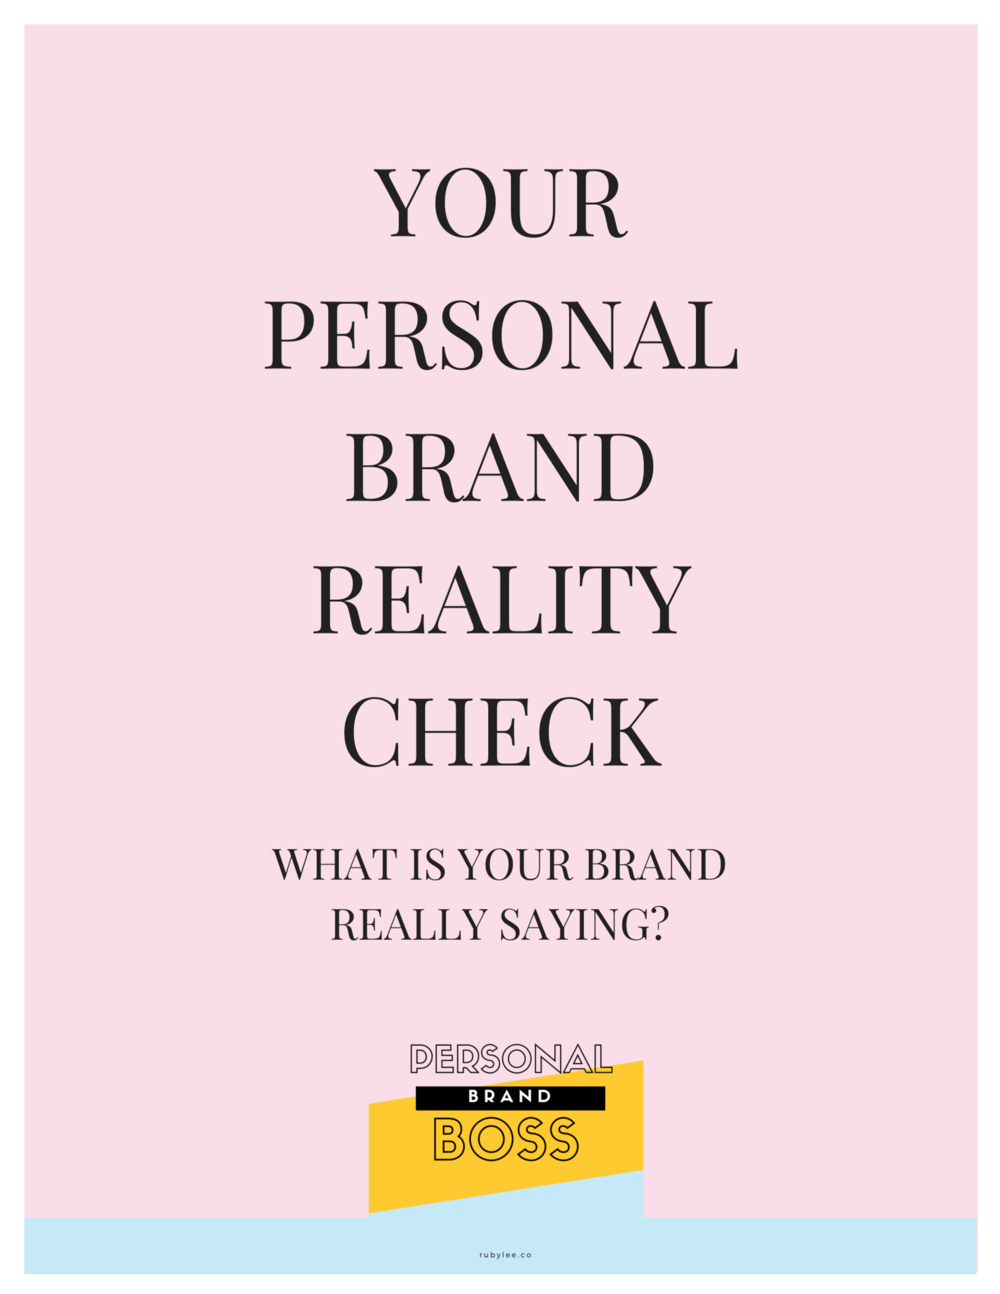 Your Personal Brand Reality Check LOGO.png